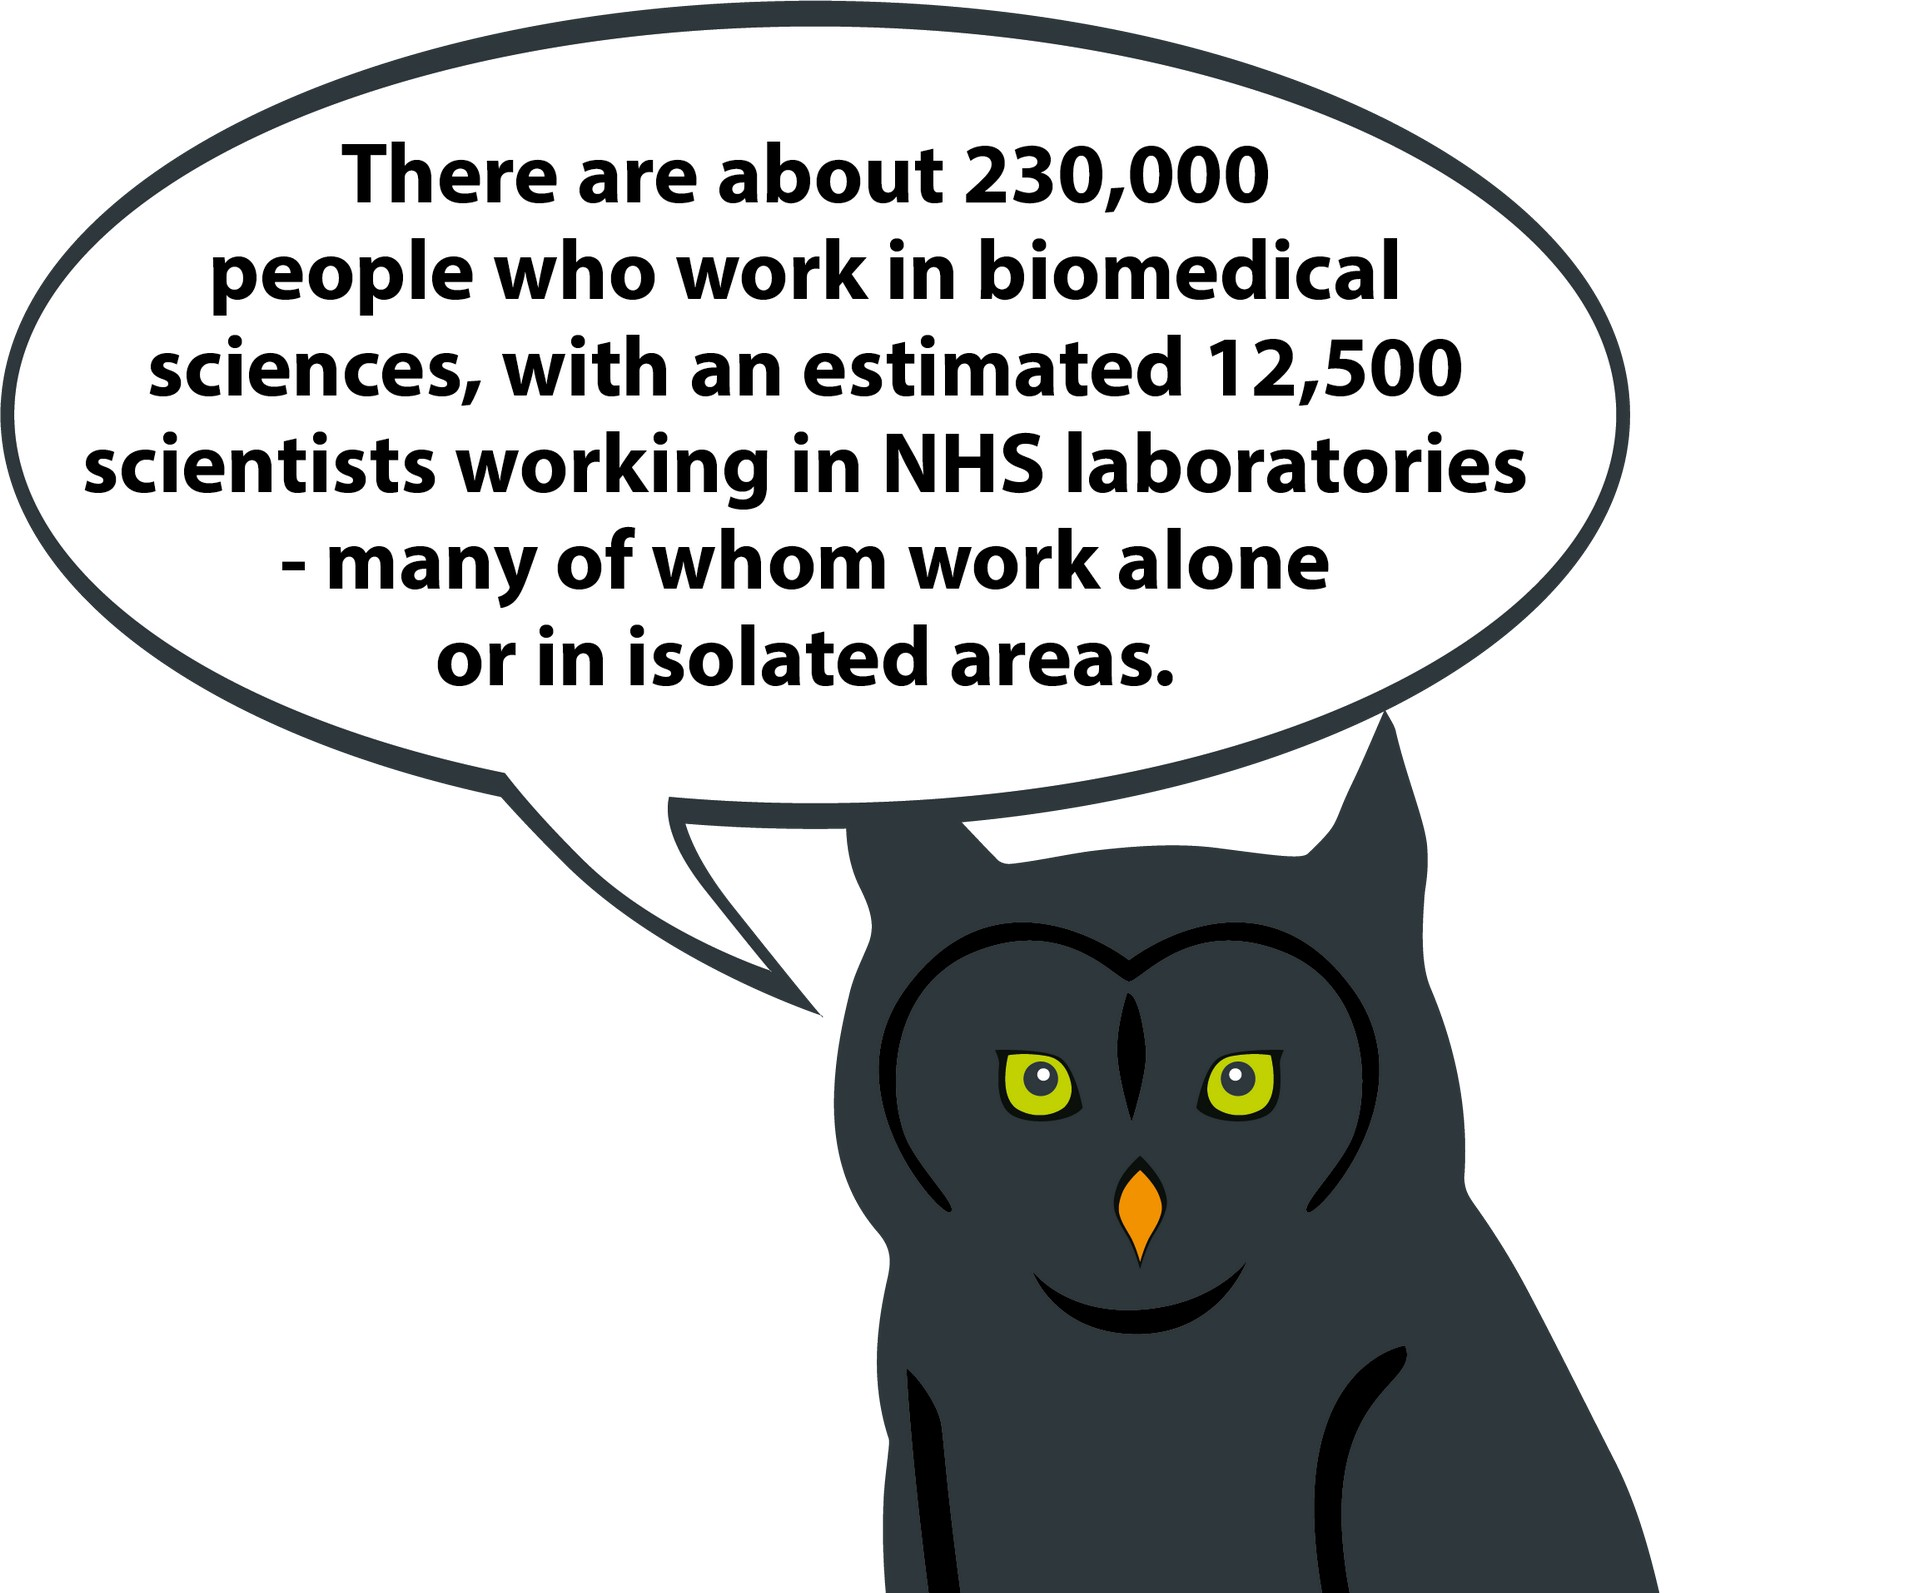 Lone worker protection - Science and Bio workers